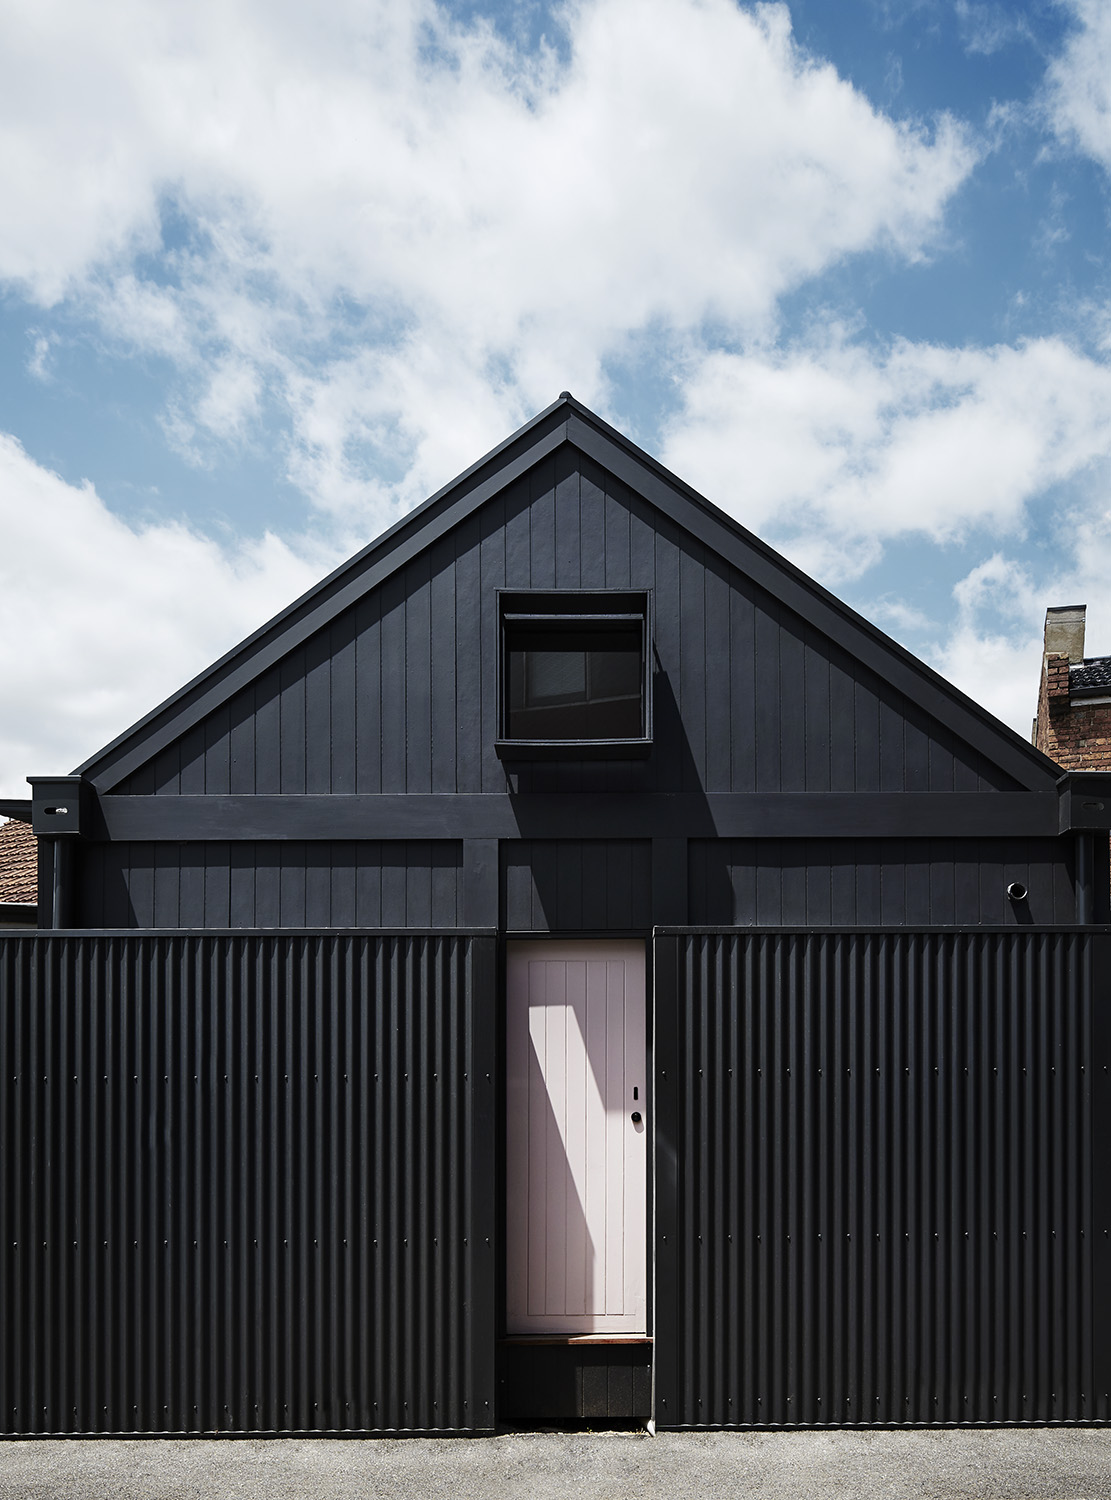 Exterior Entrance - O'Grady - Whiting Architects - Melbourne, VIC, Australia - The Local Project O'Grady - Whiting Architects - Melbourne, VIC, Australia - The Local Project